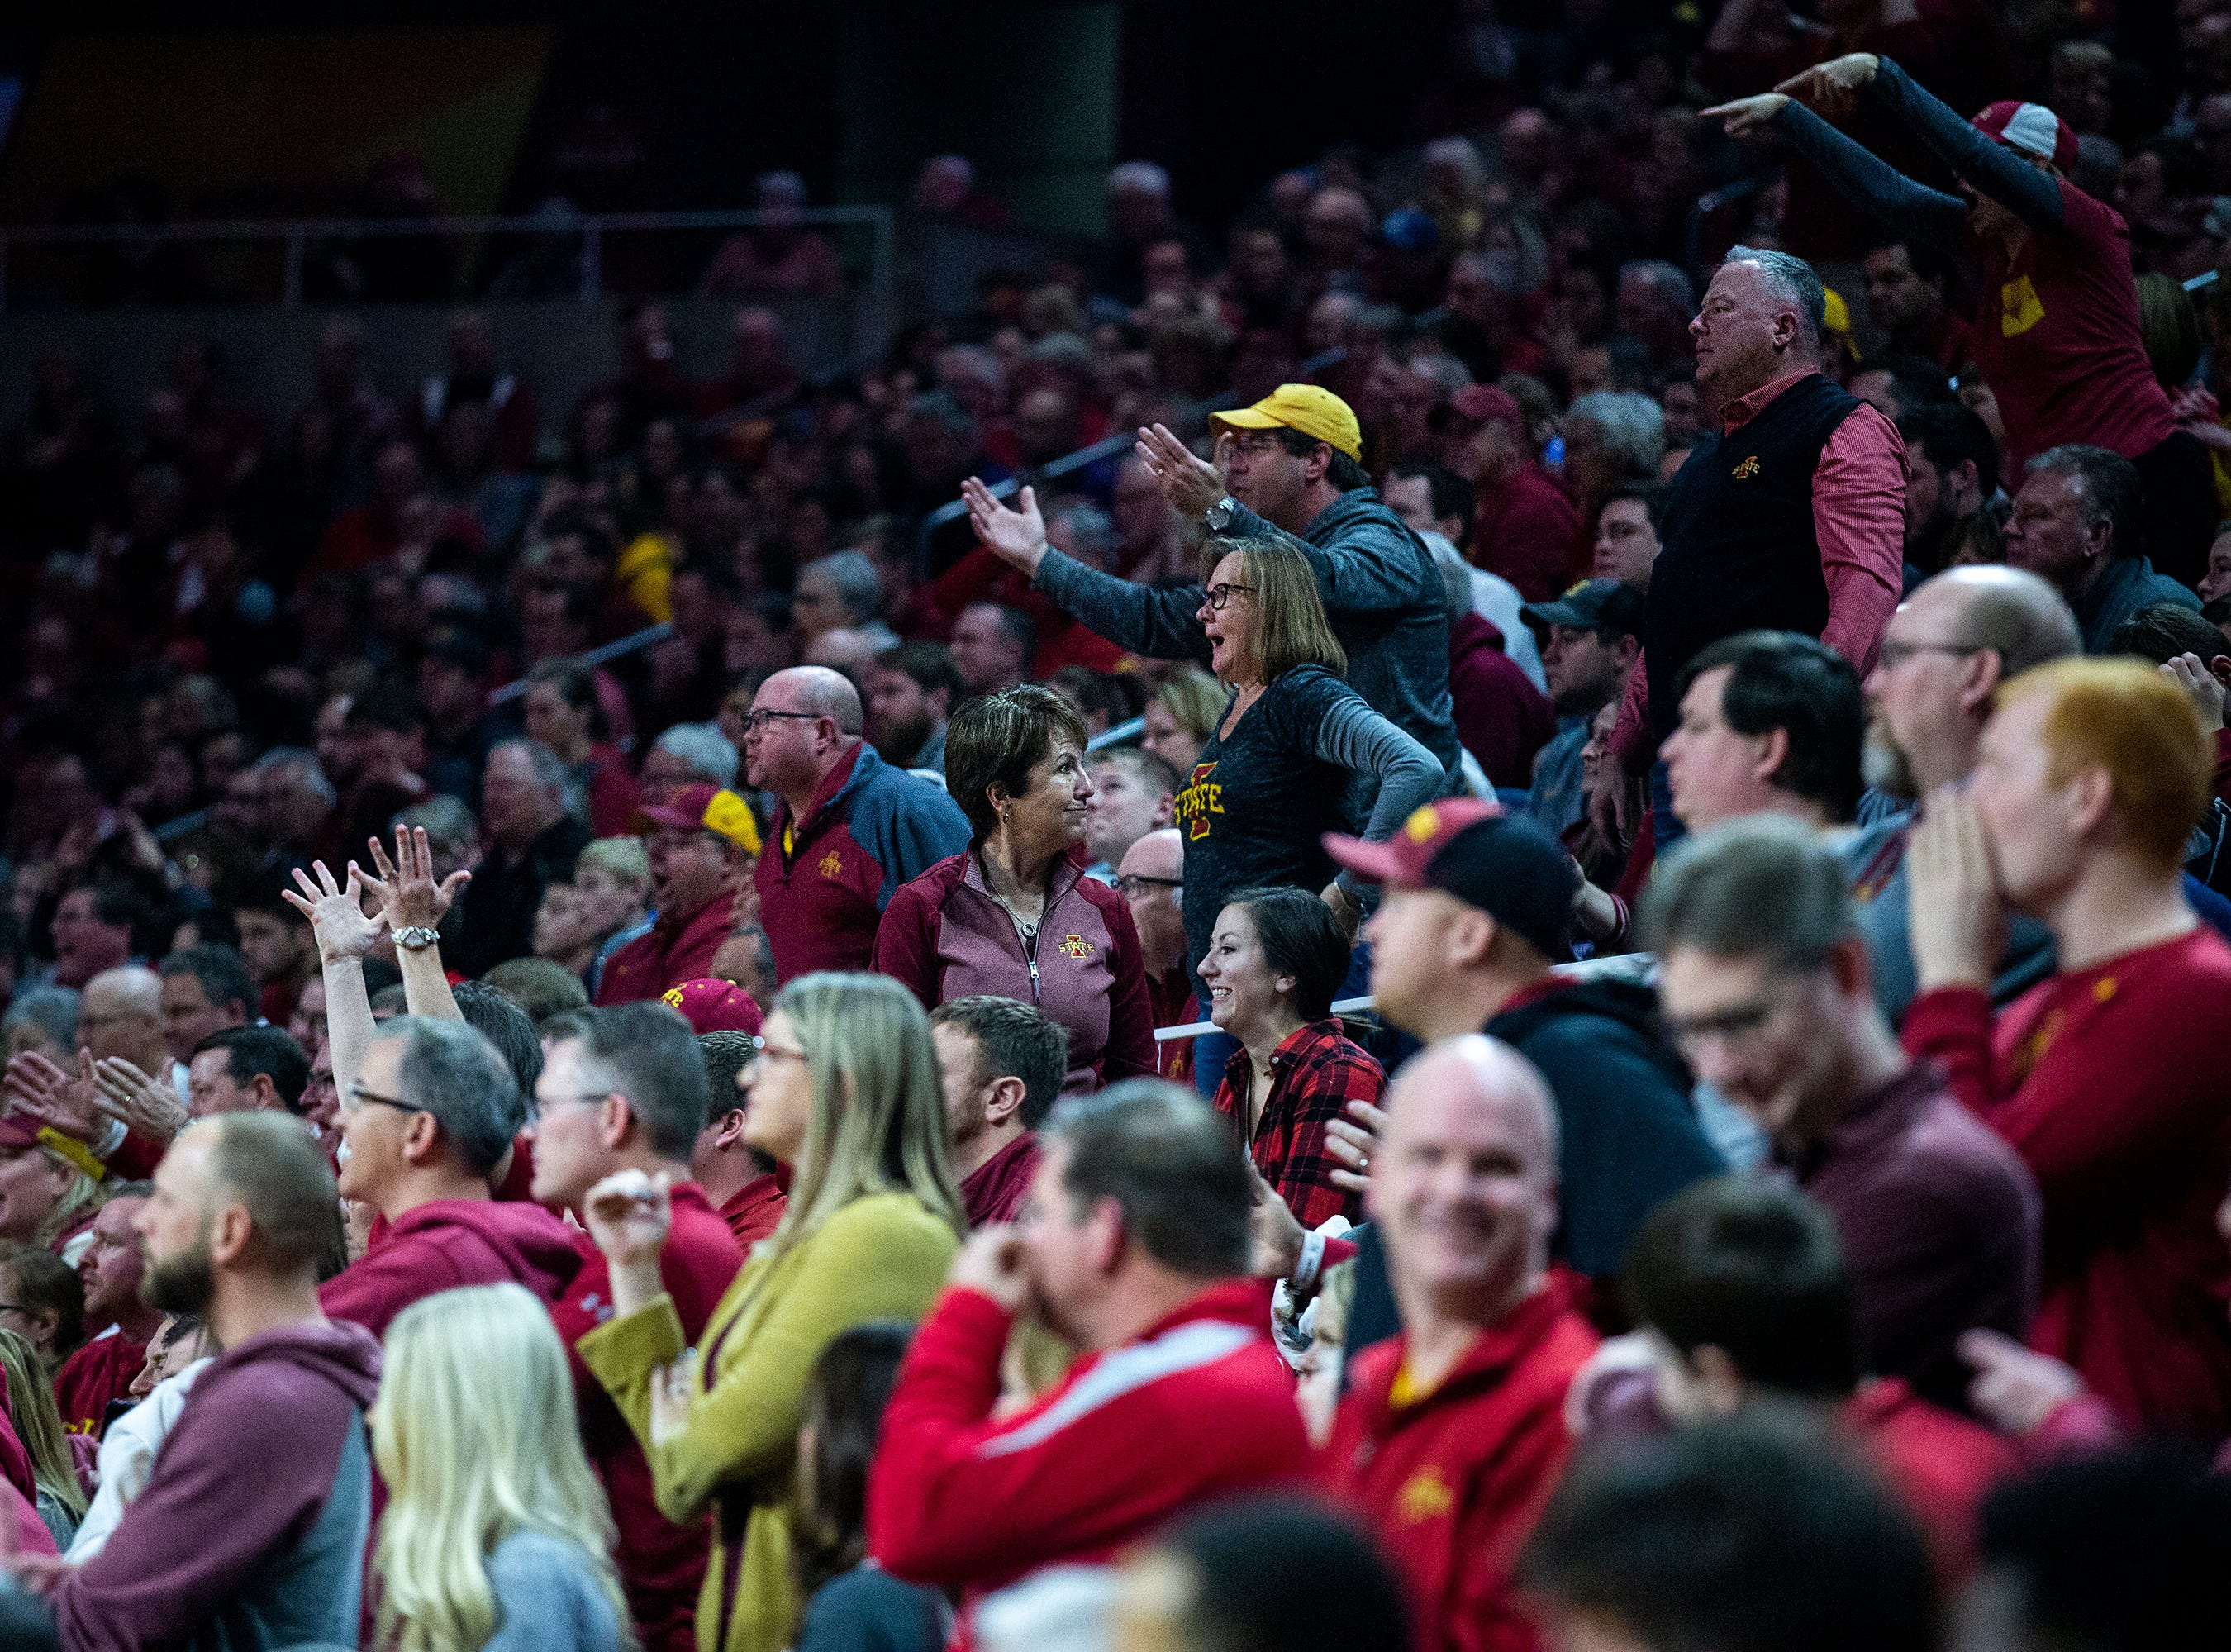 Fans react to a call they didn't like during the Iowa State men's basketball game against Kansas State on Saturday, Jan. 12, 2019, in Hilton Coliseum. The Cyclones lost to KSU by one point, 58-57.